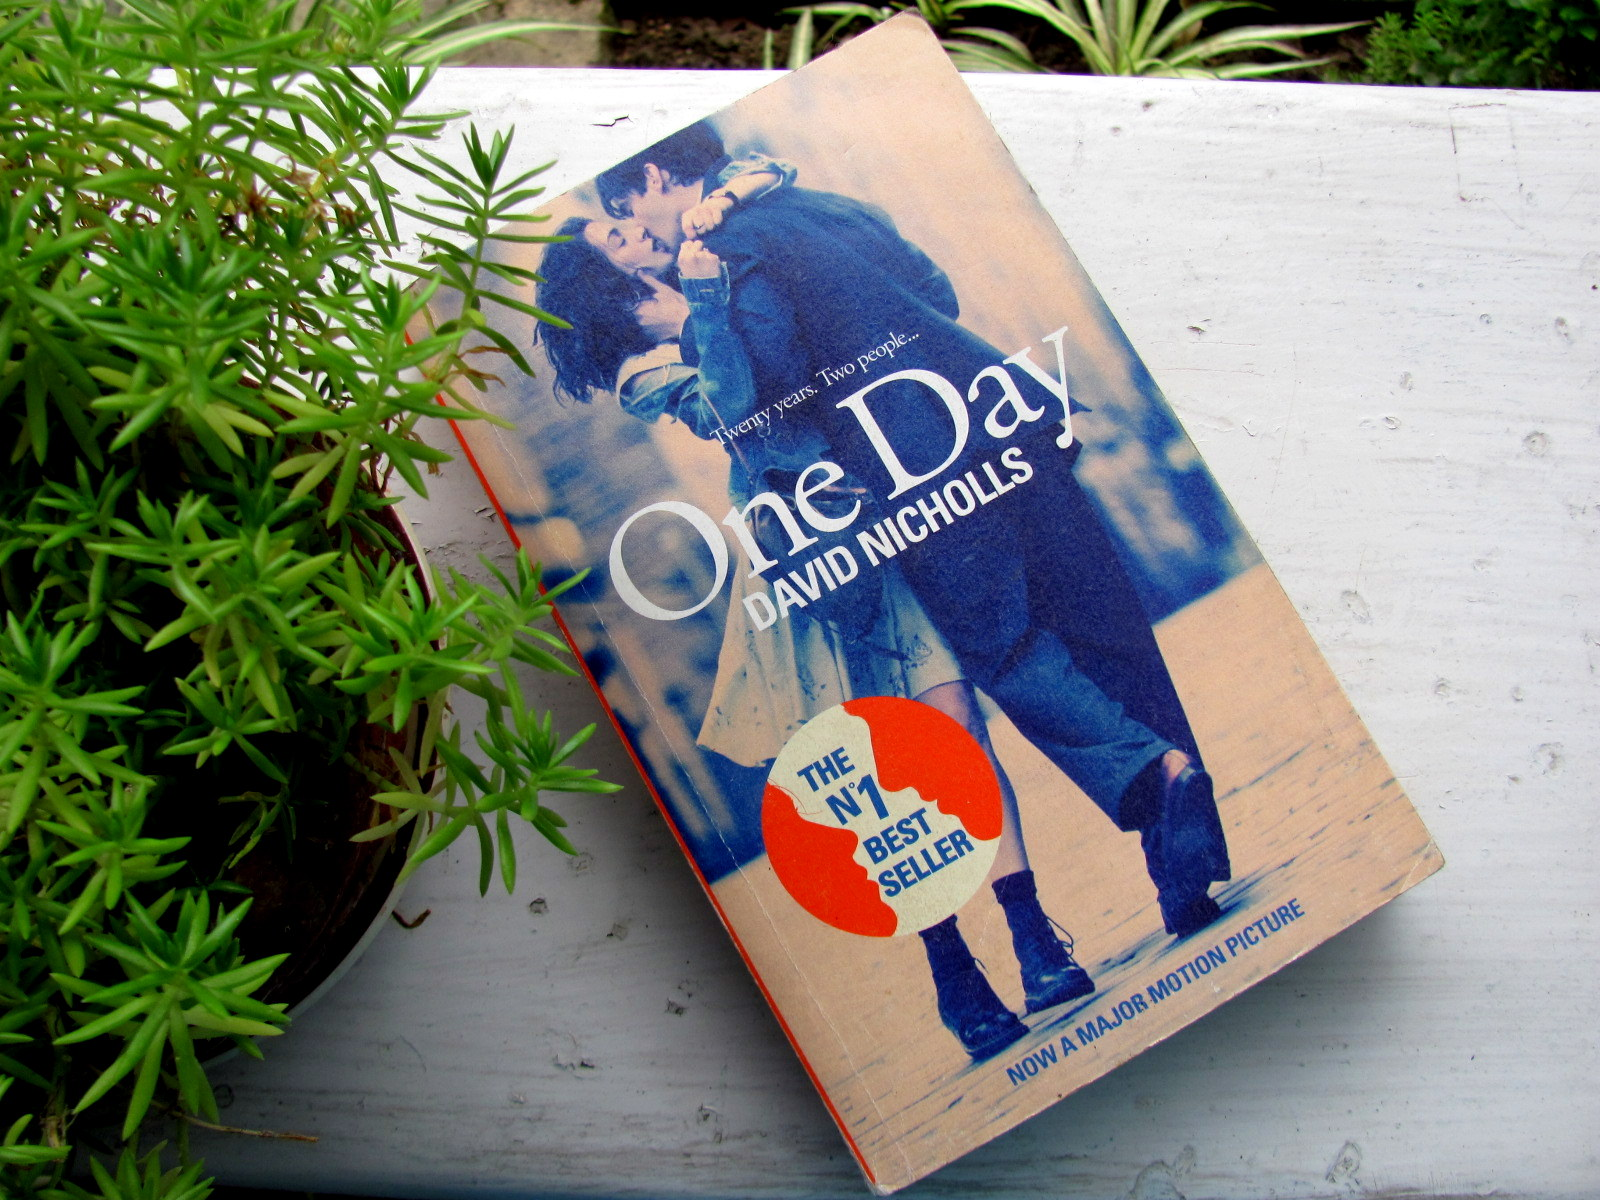 Day book david nicholls one